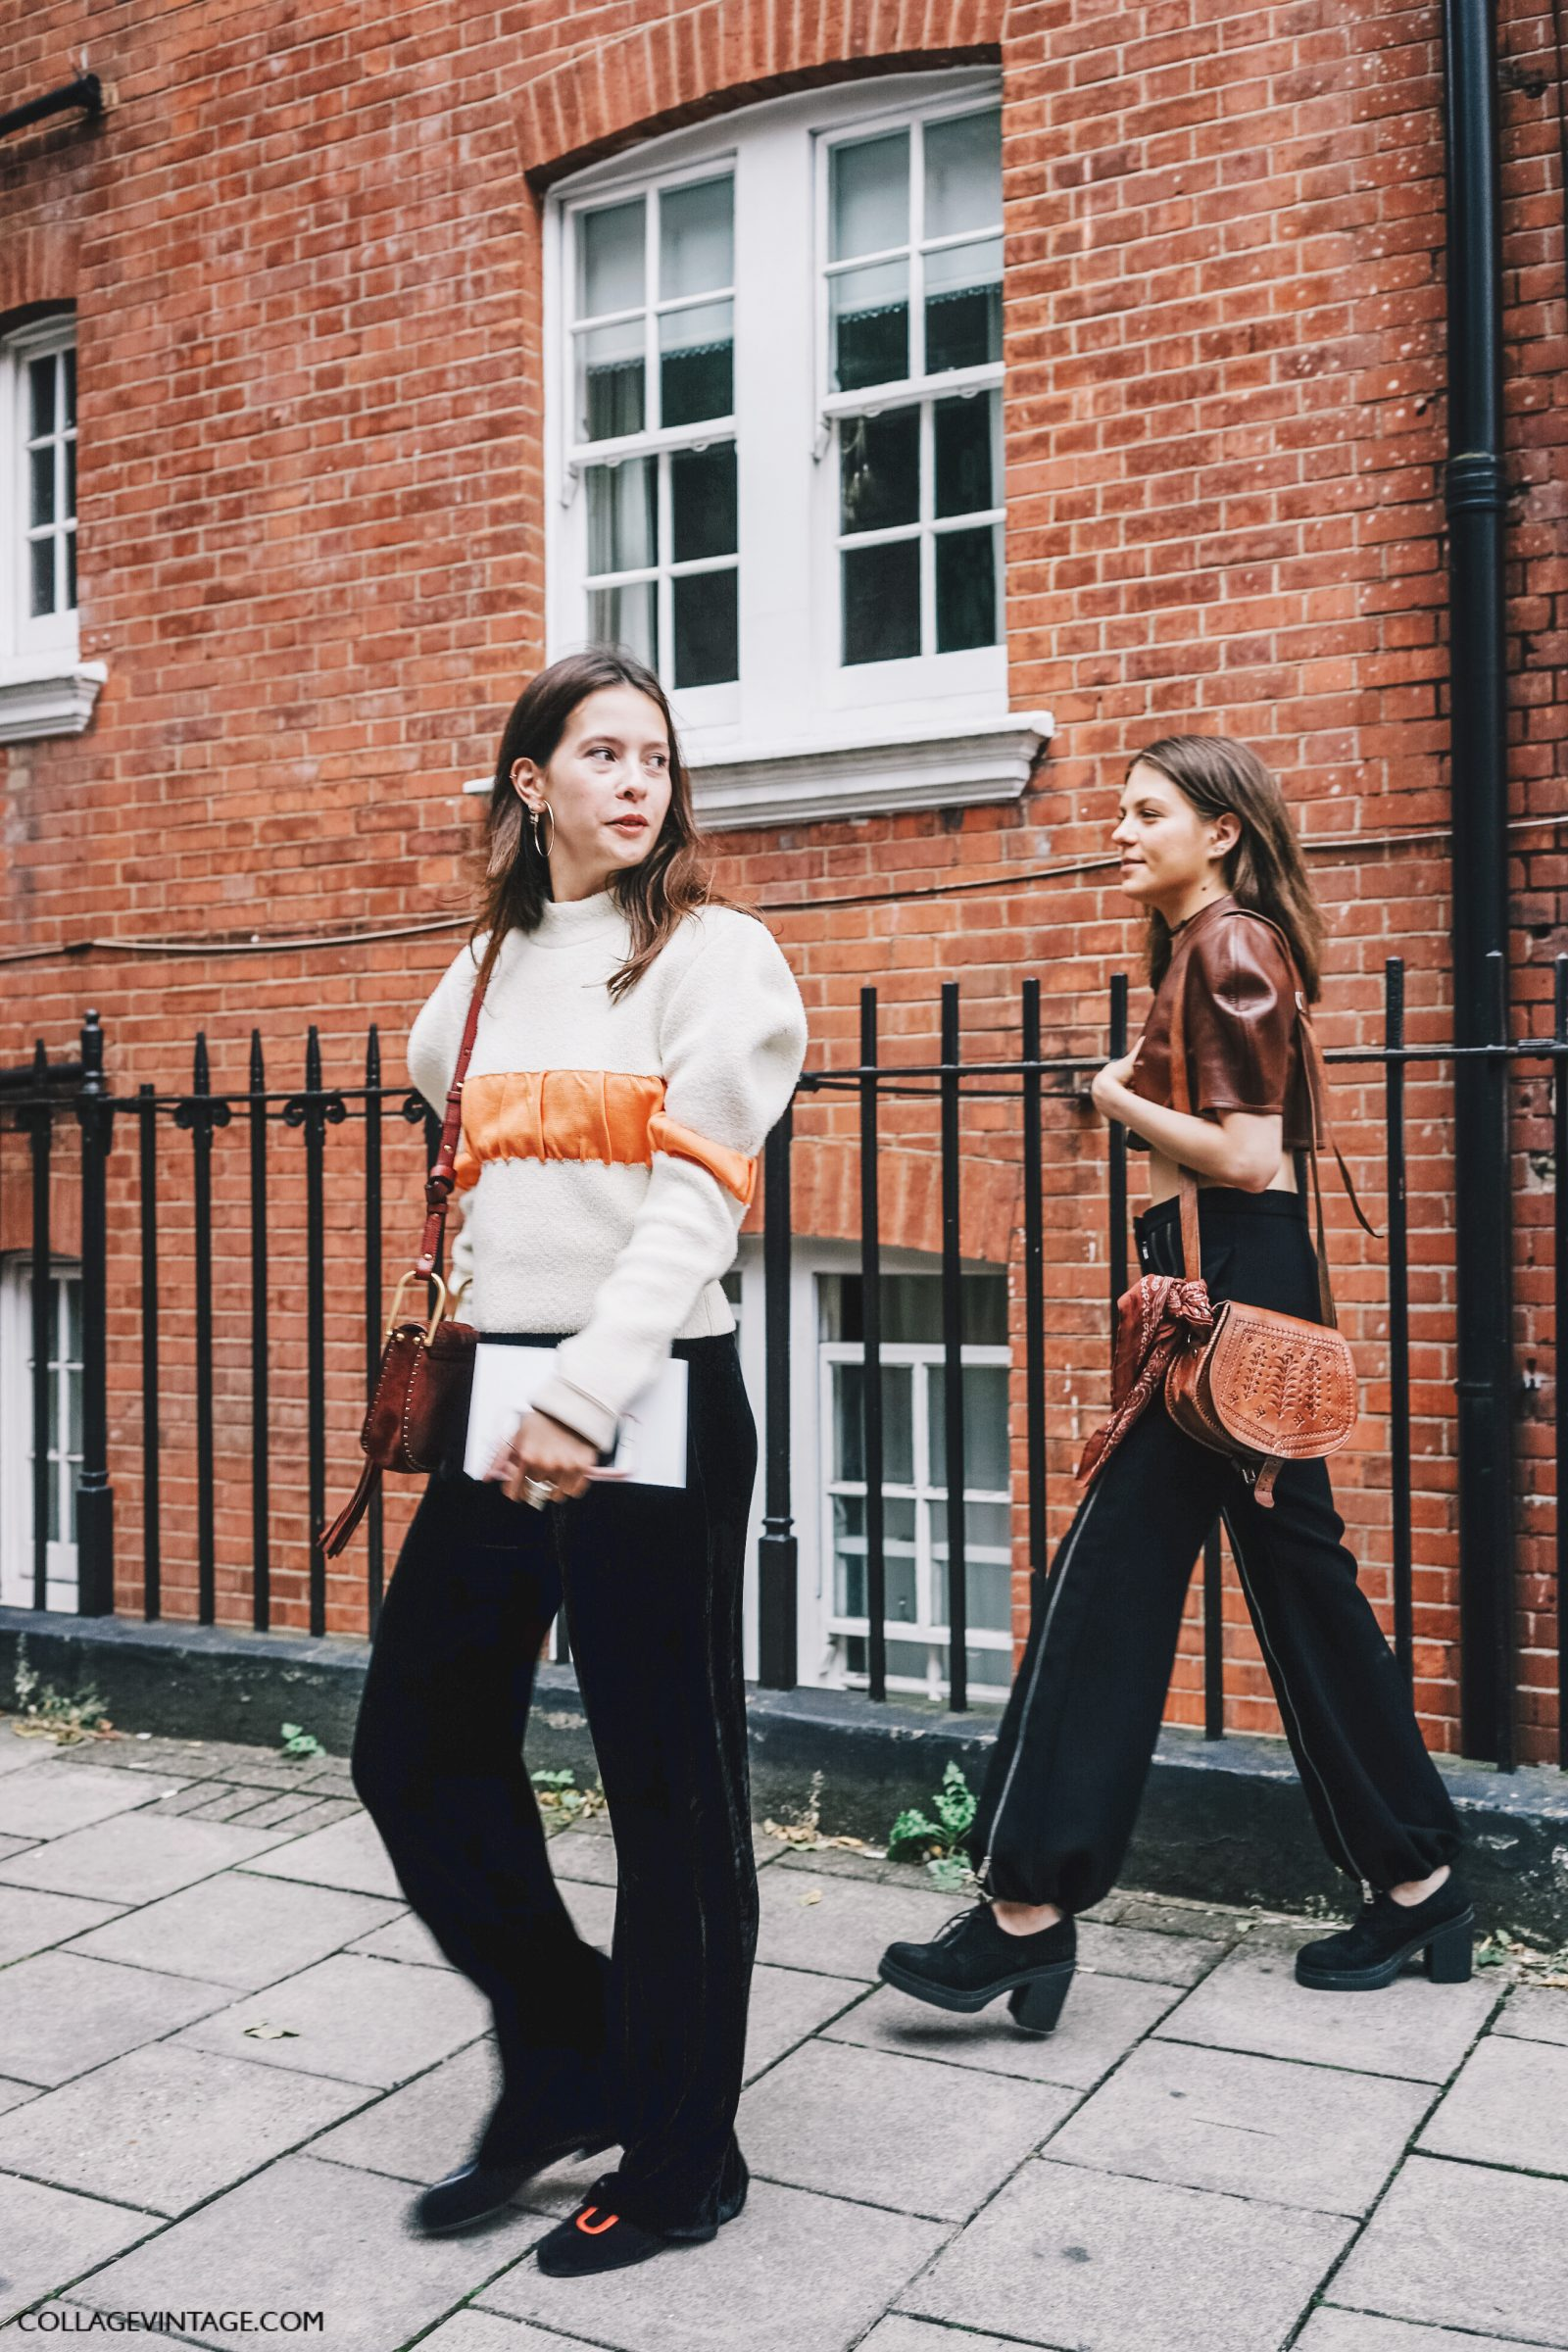 Lfw London Fashion Week Ss17 Street Style Outfits Collage